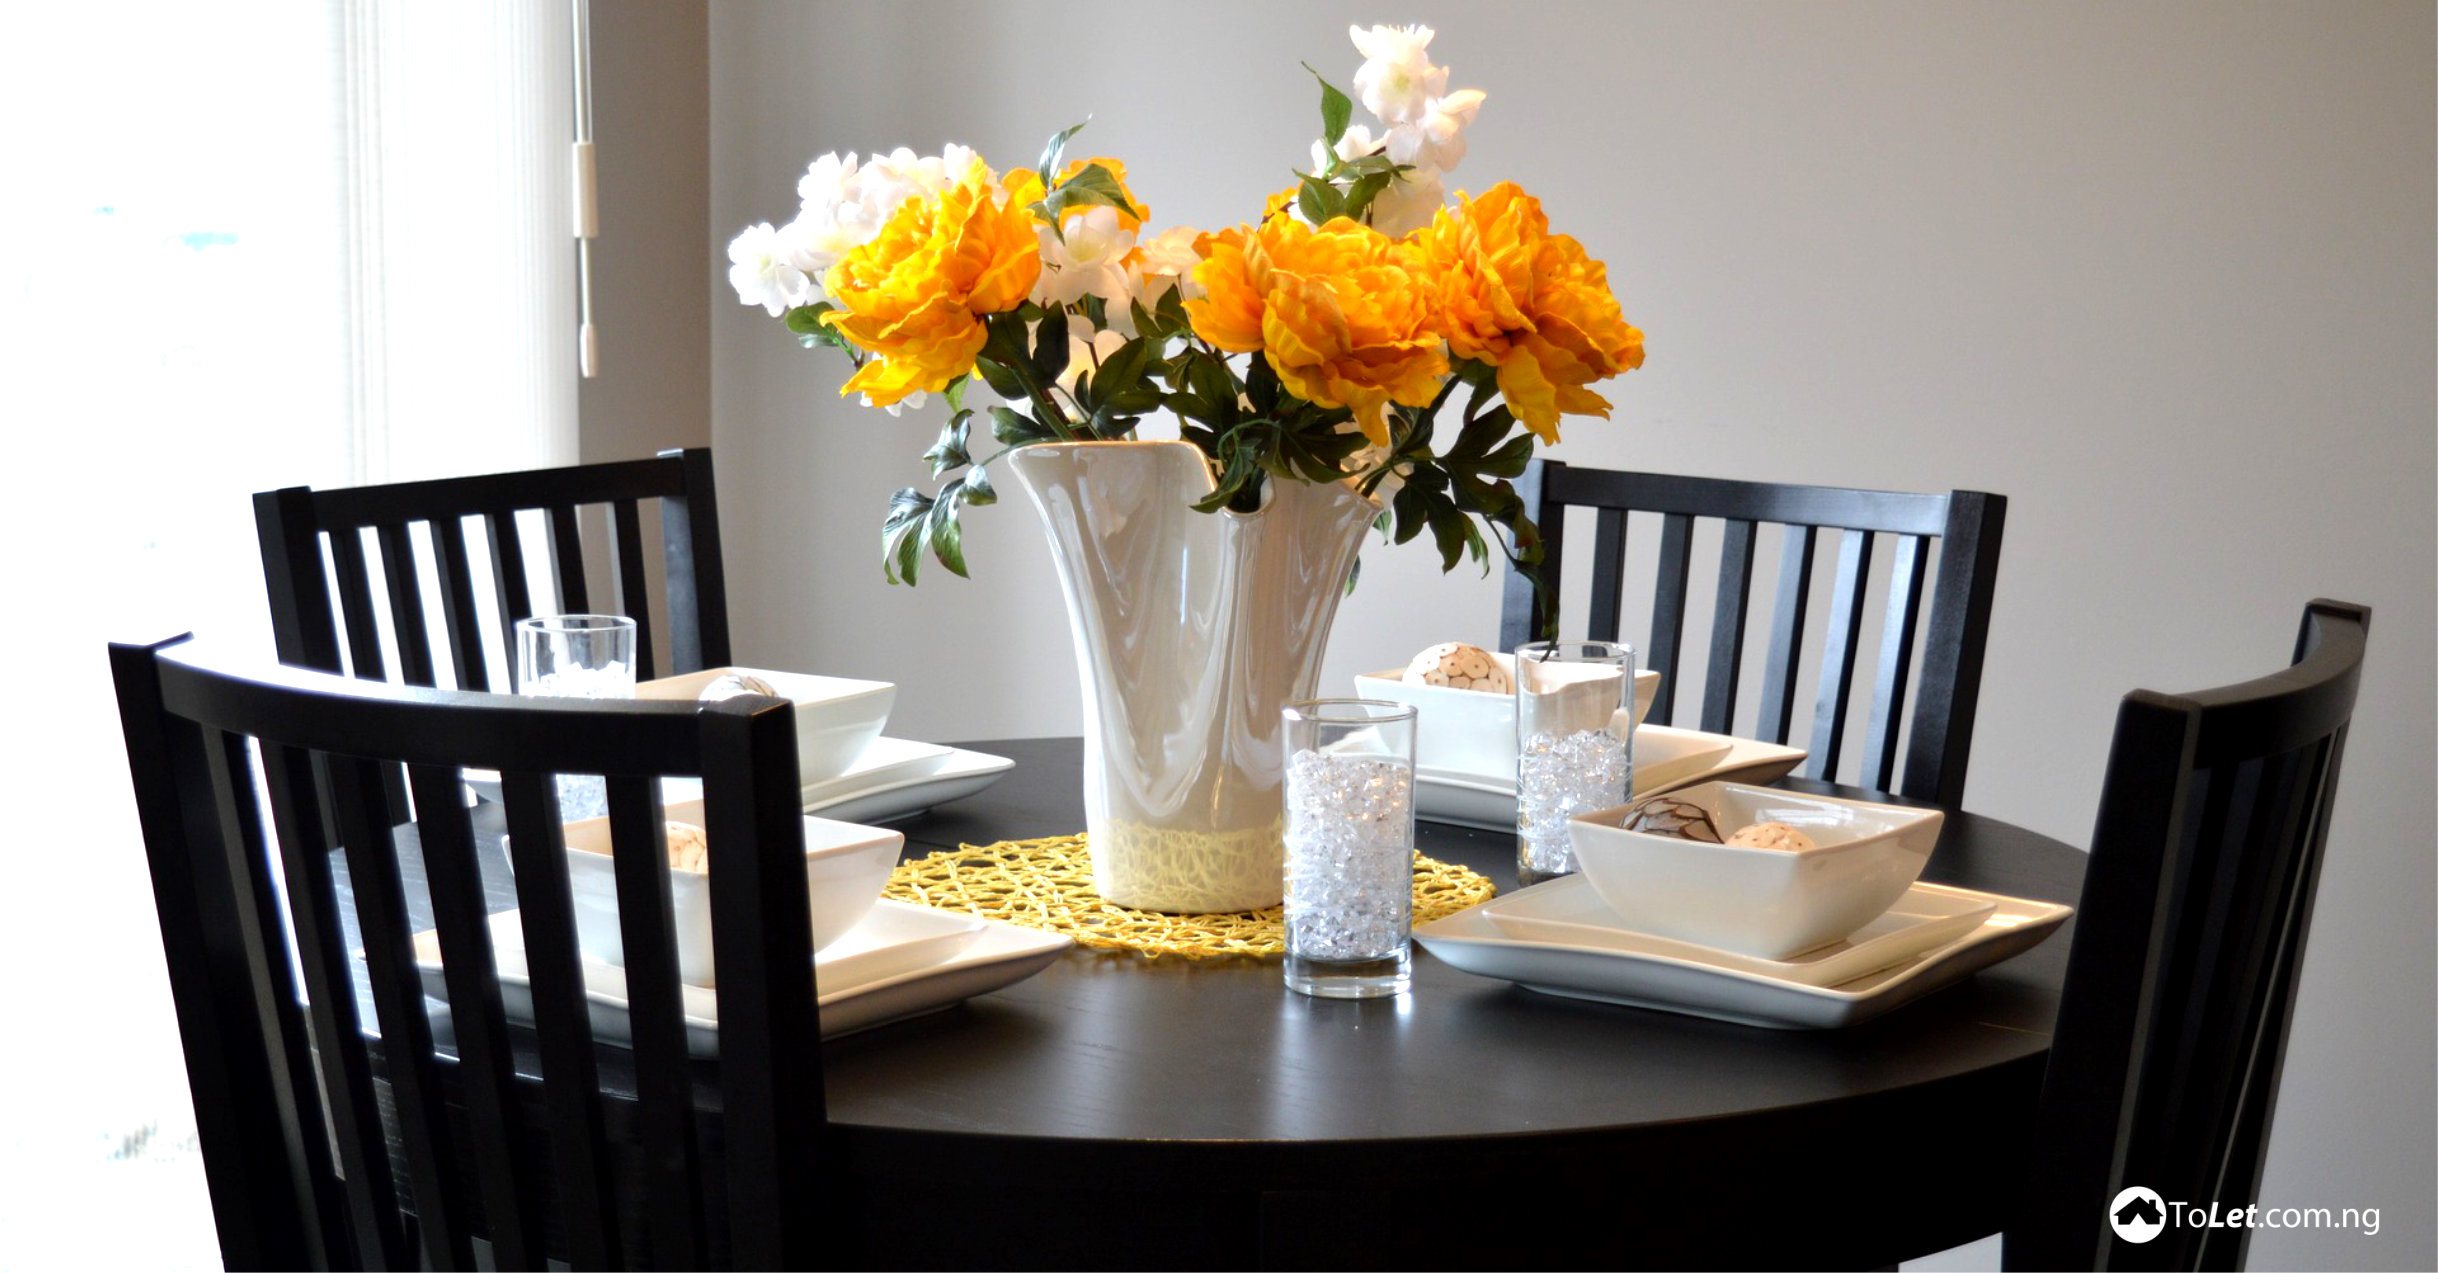 6 Most Por Types Of Dining Room Sets Propertypro Insider